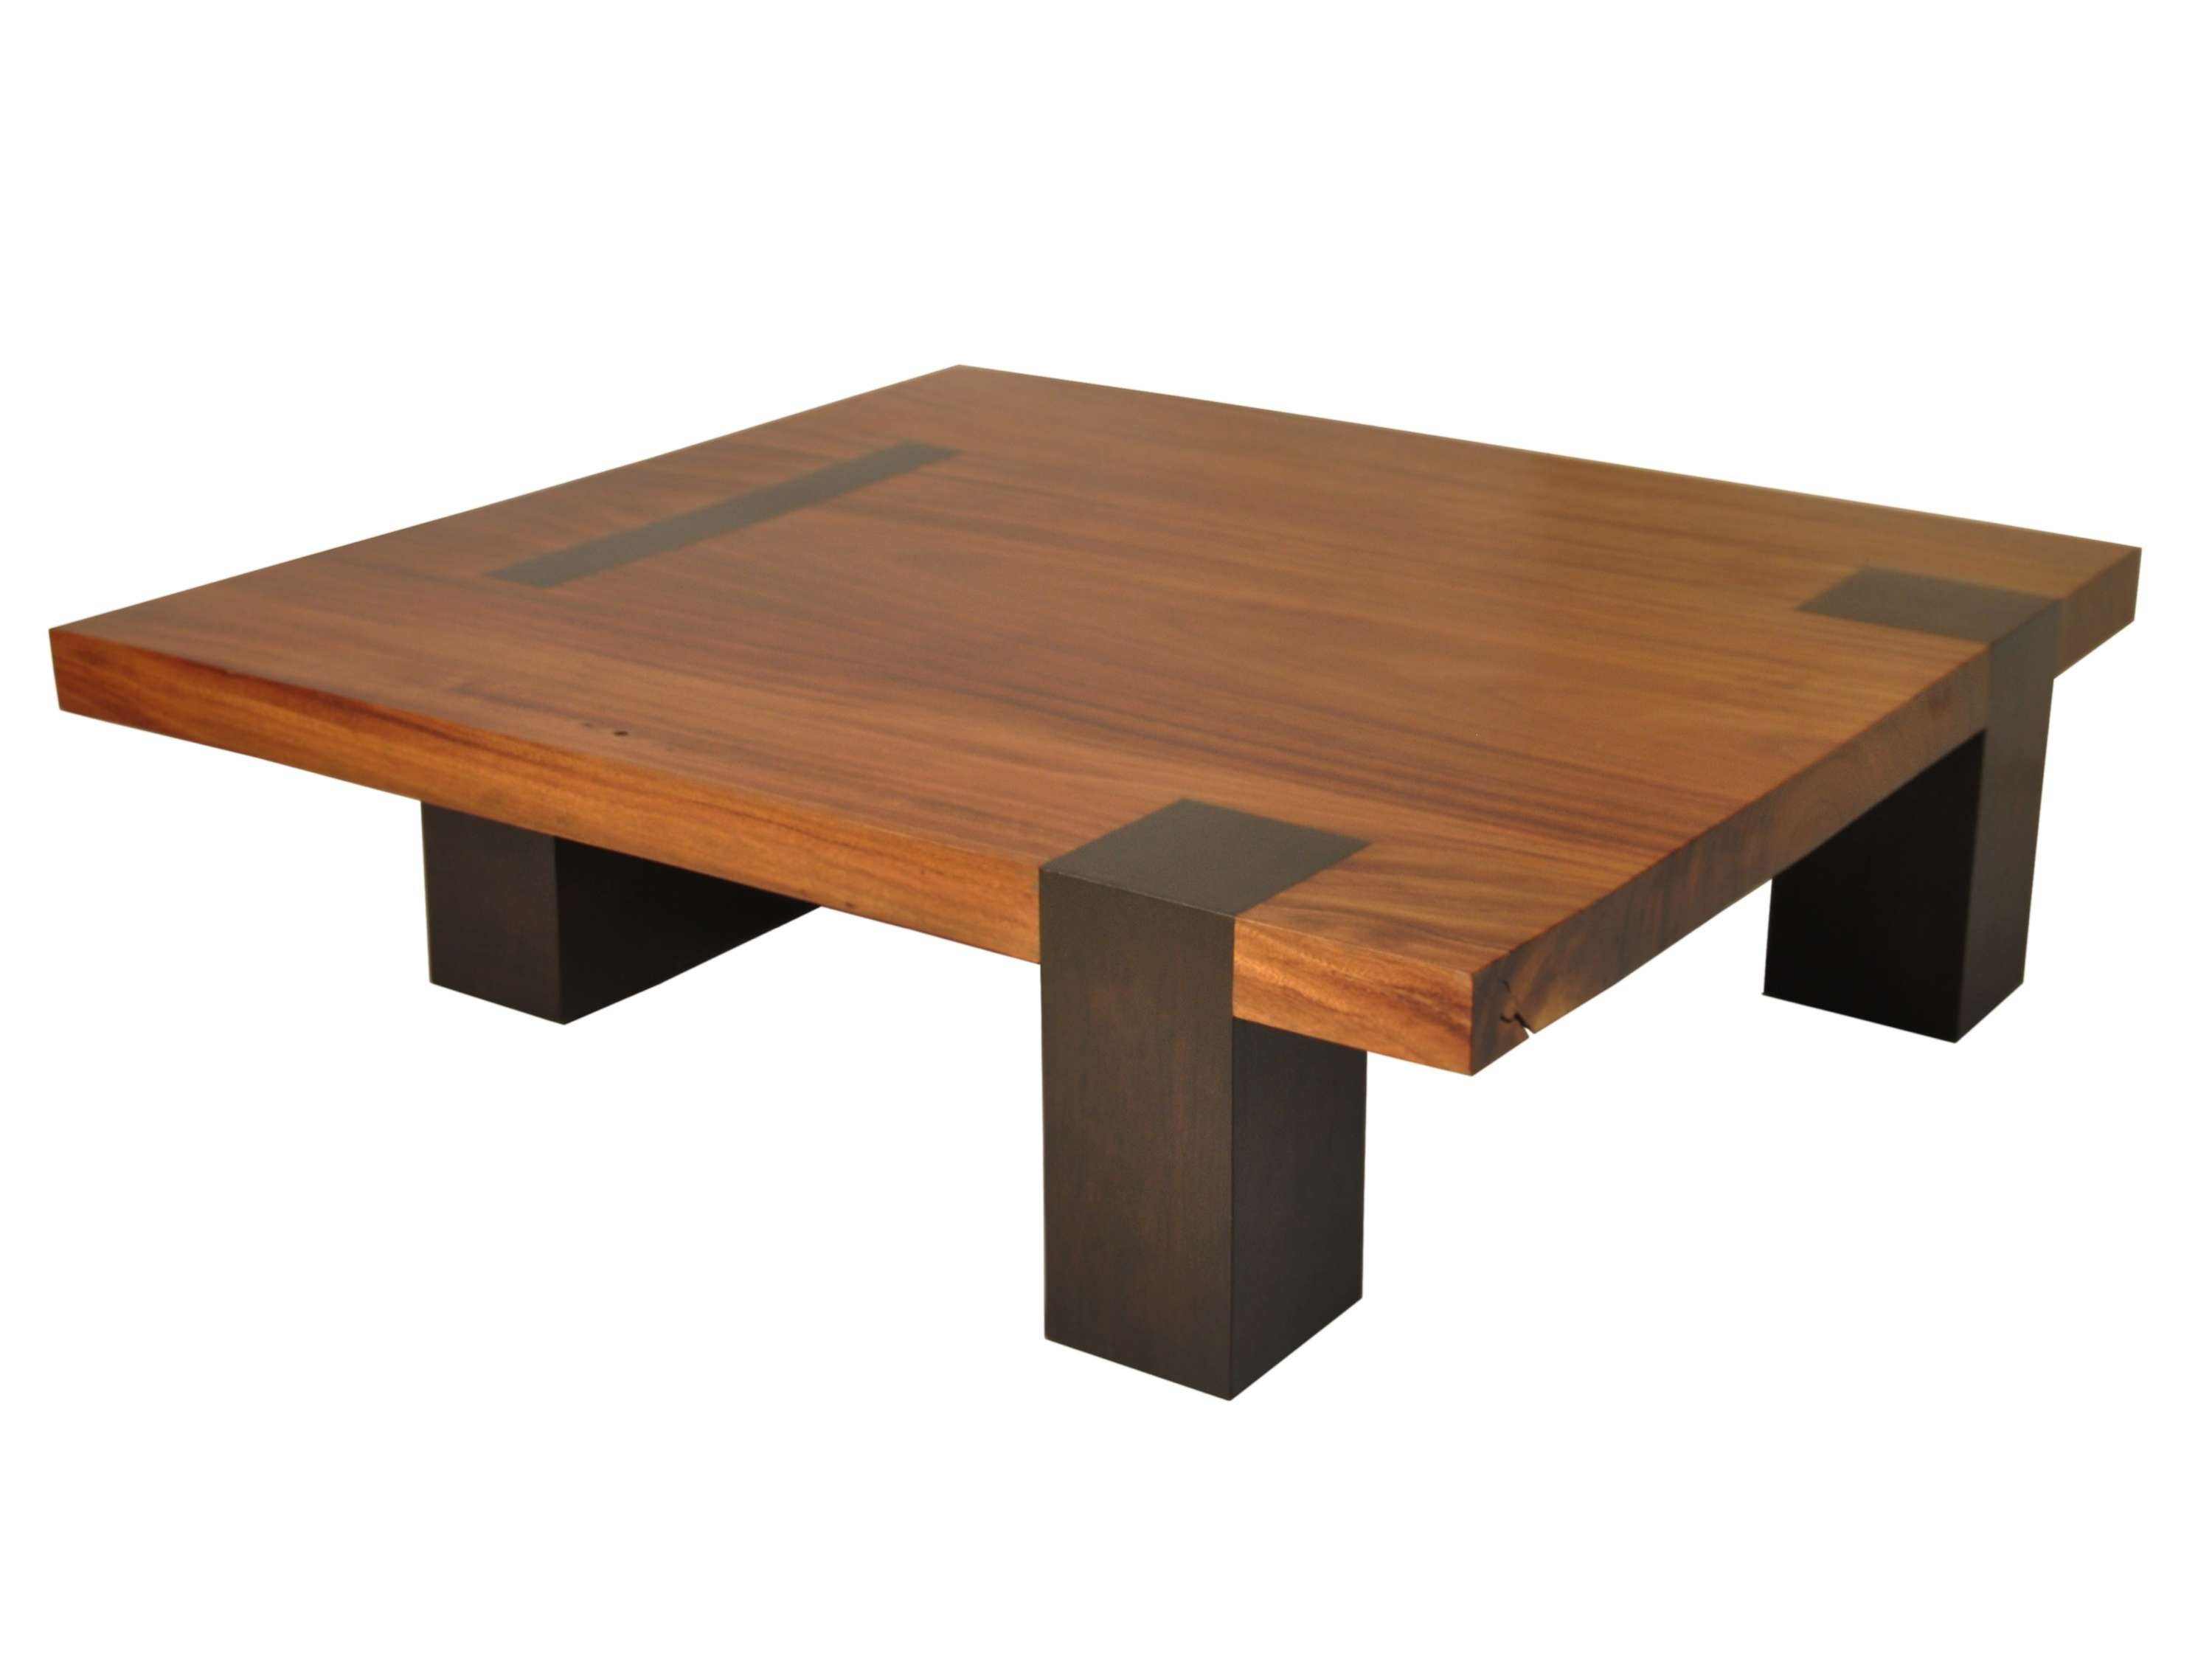 Current Square Wood Coffee Tables With Storage In Coffee Tables Ideas: Best Wood Square Coffee Table With Storage (View 9 of 20)